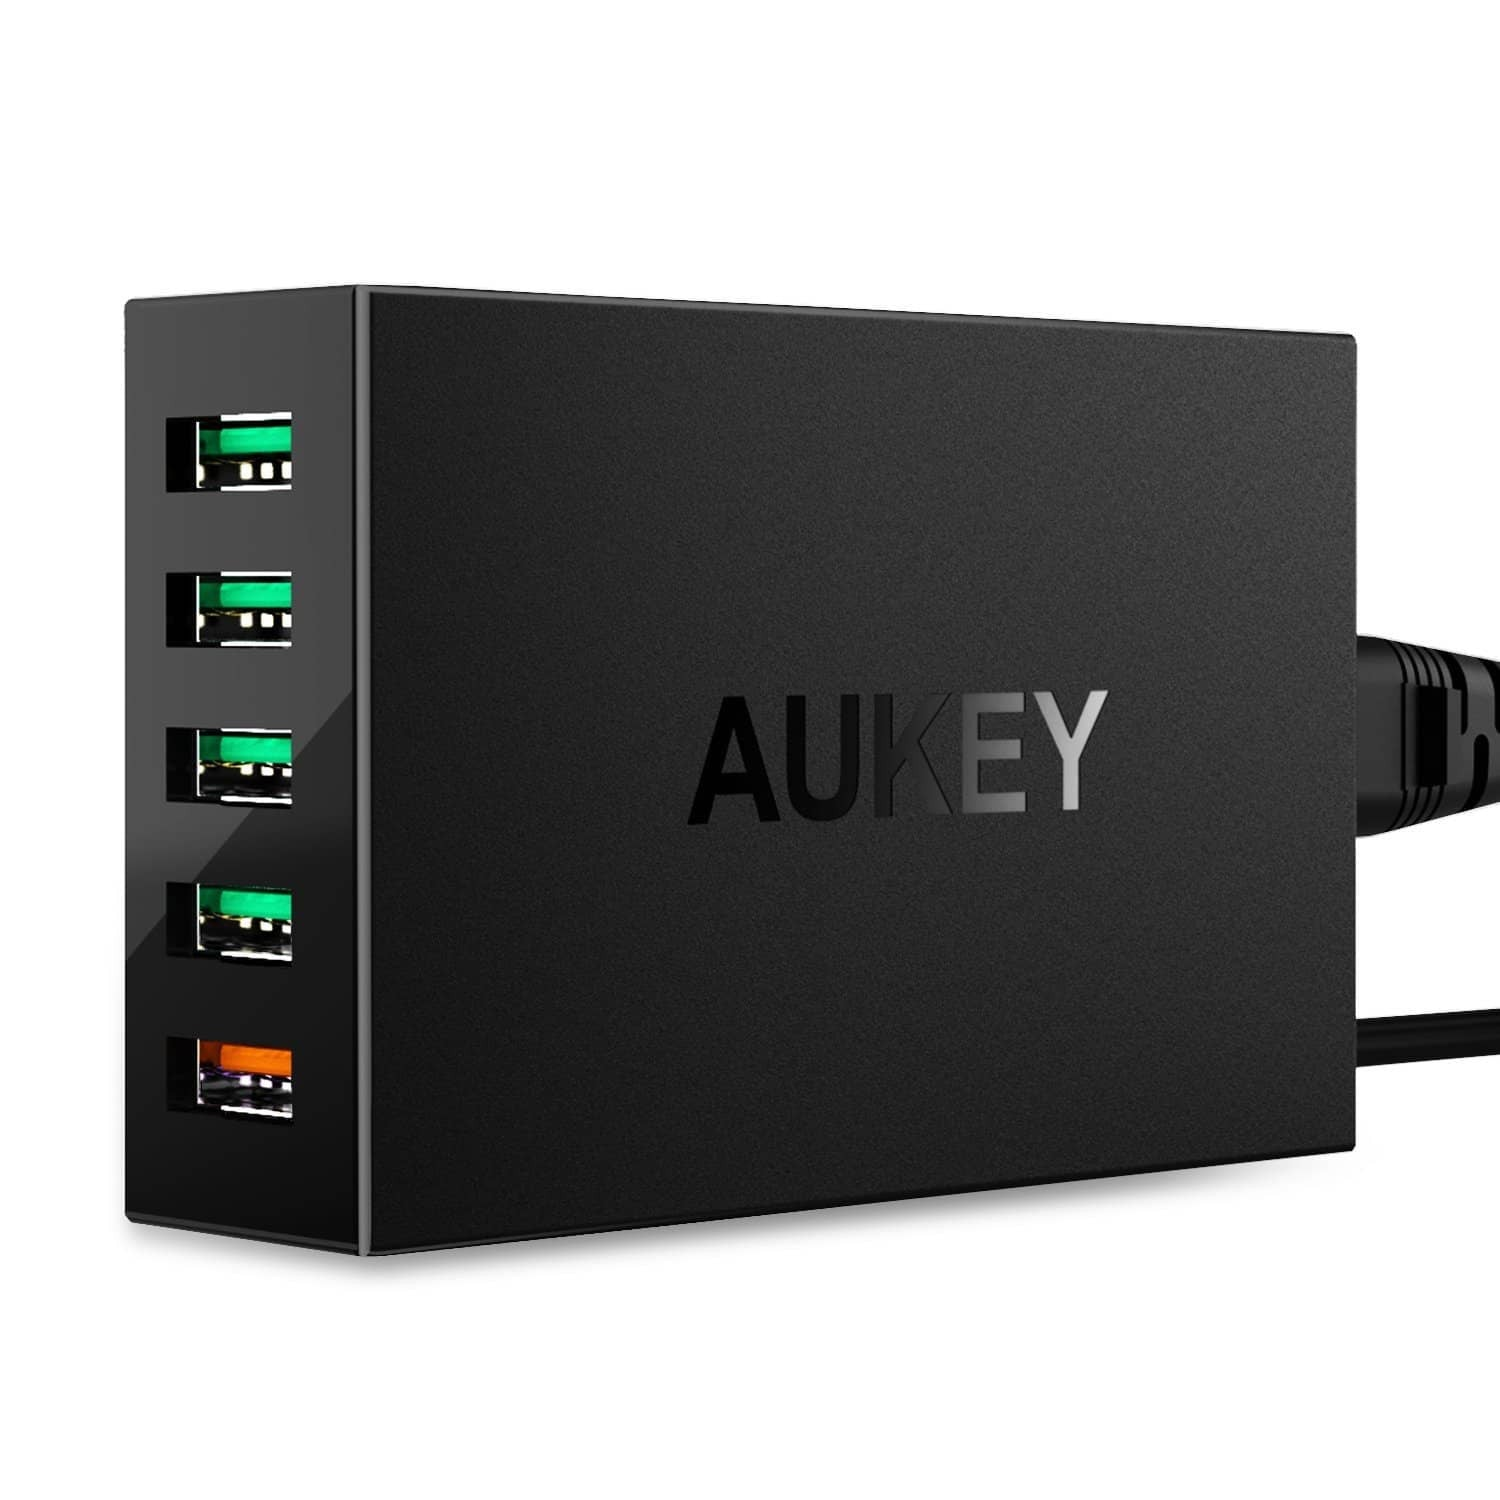 AUKEY PA-T15 54W 5 USB port Qualcomm Quick Charge 3.0 Desktop Charger - Aukey Malaysia Official Store